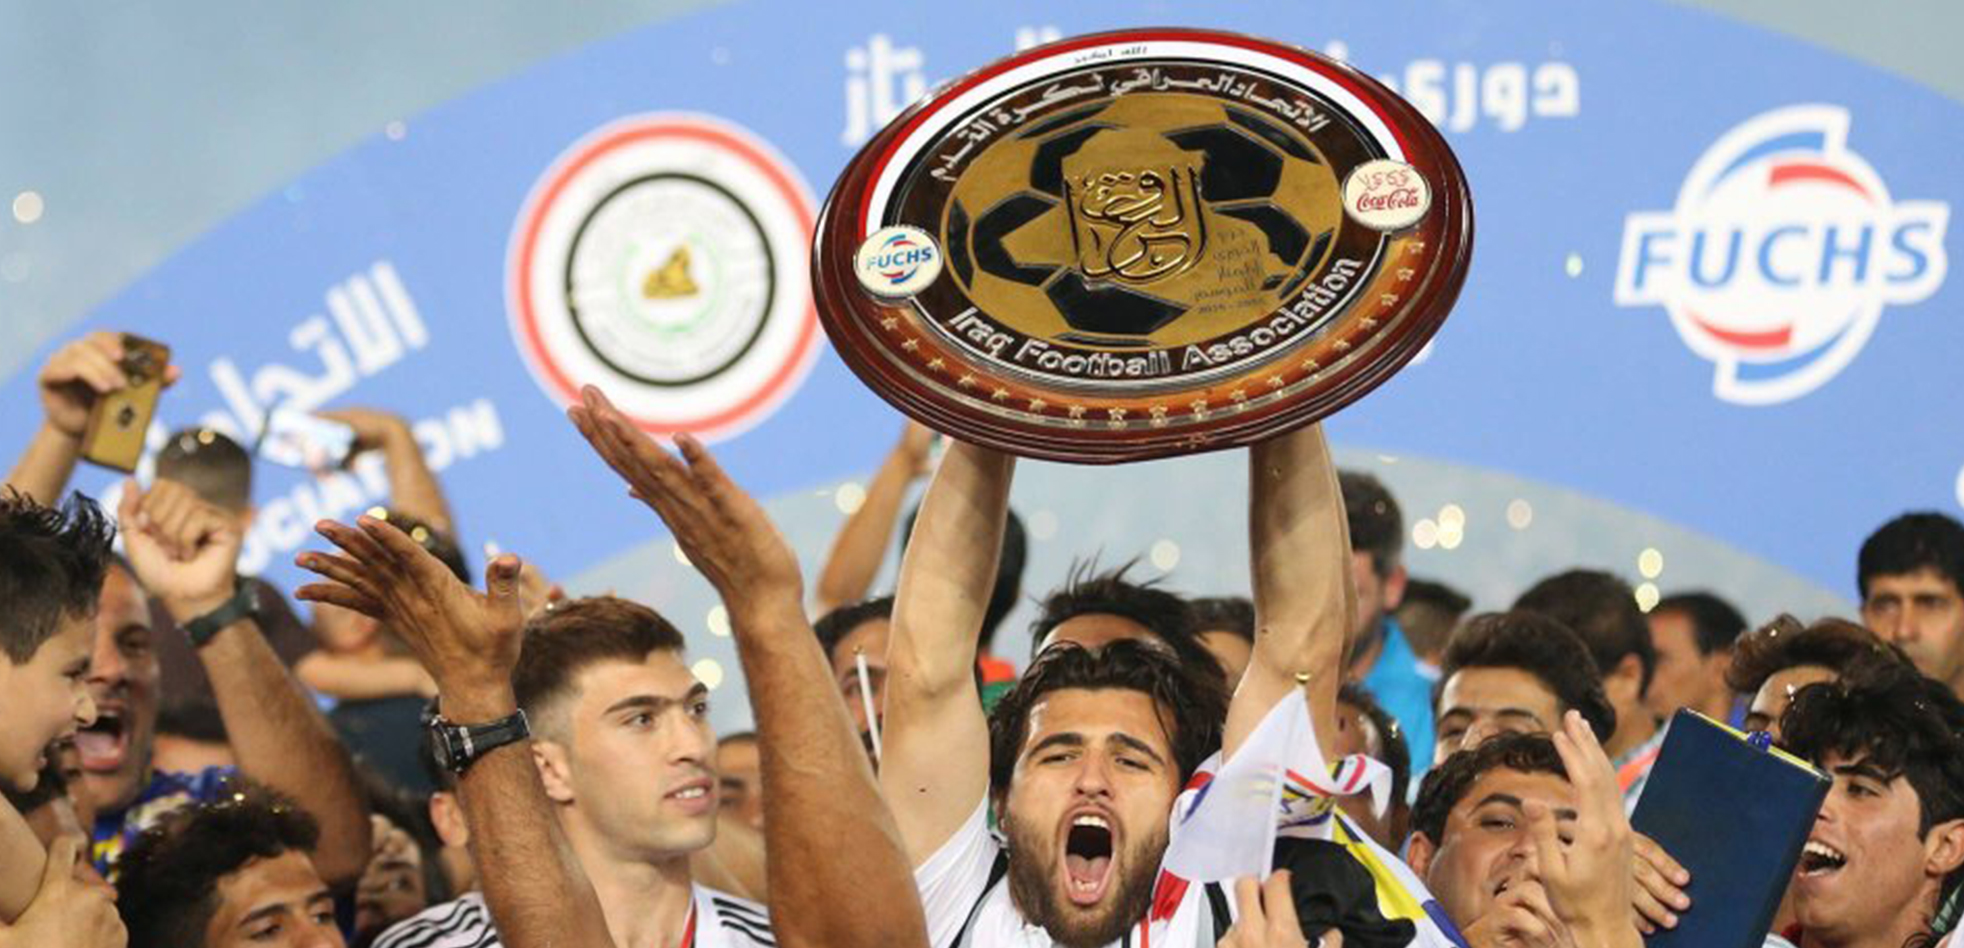 2016/17 Iraqi Premier League Preview and Predictions